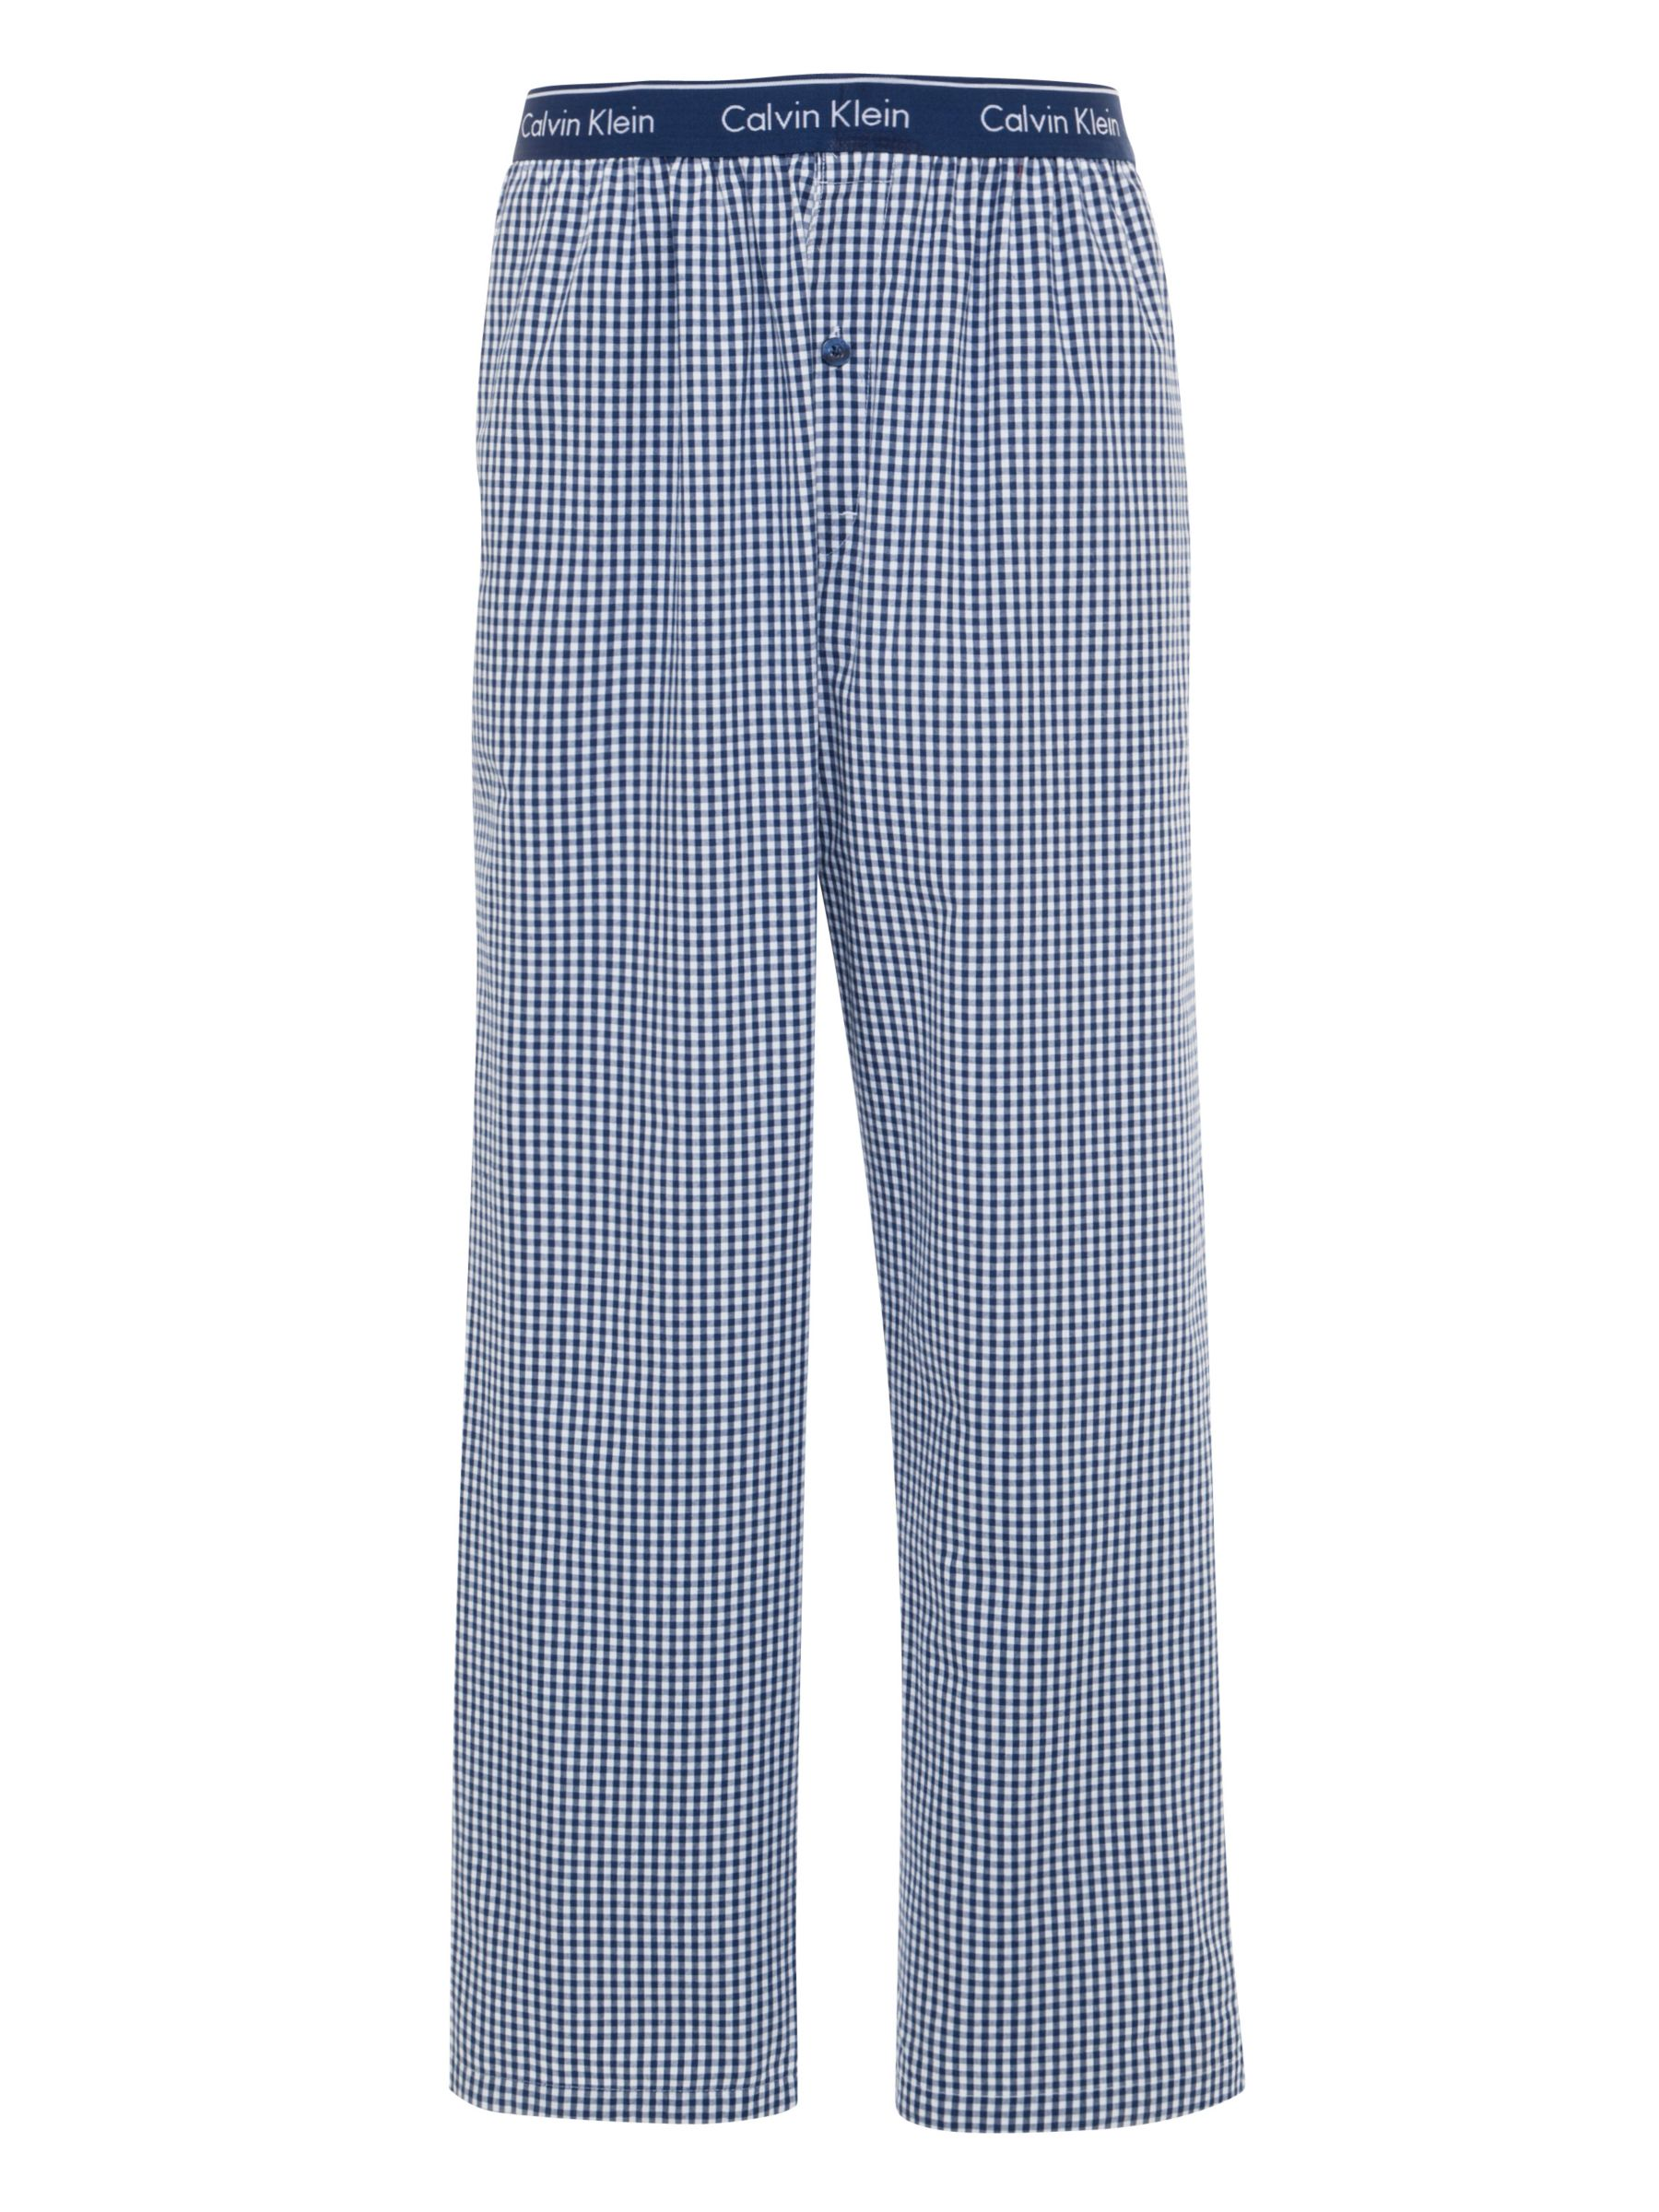 Calvin Klein Underwear Traditional Check Lounge Pants